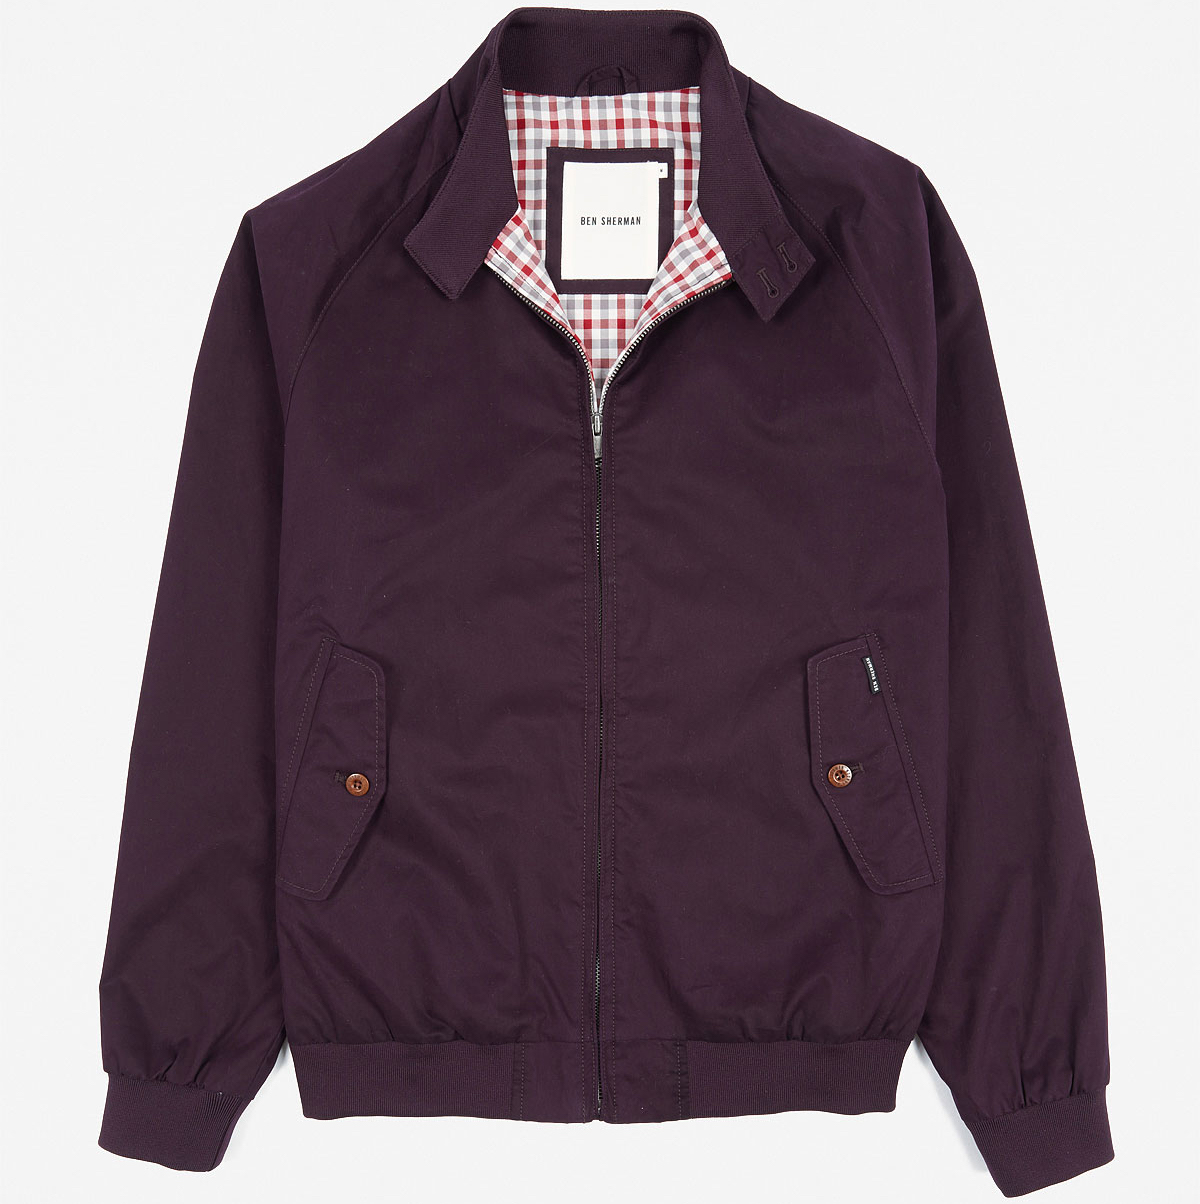 Ben Sherman Autumn/Winter 2015 Jacket Collection